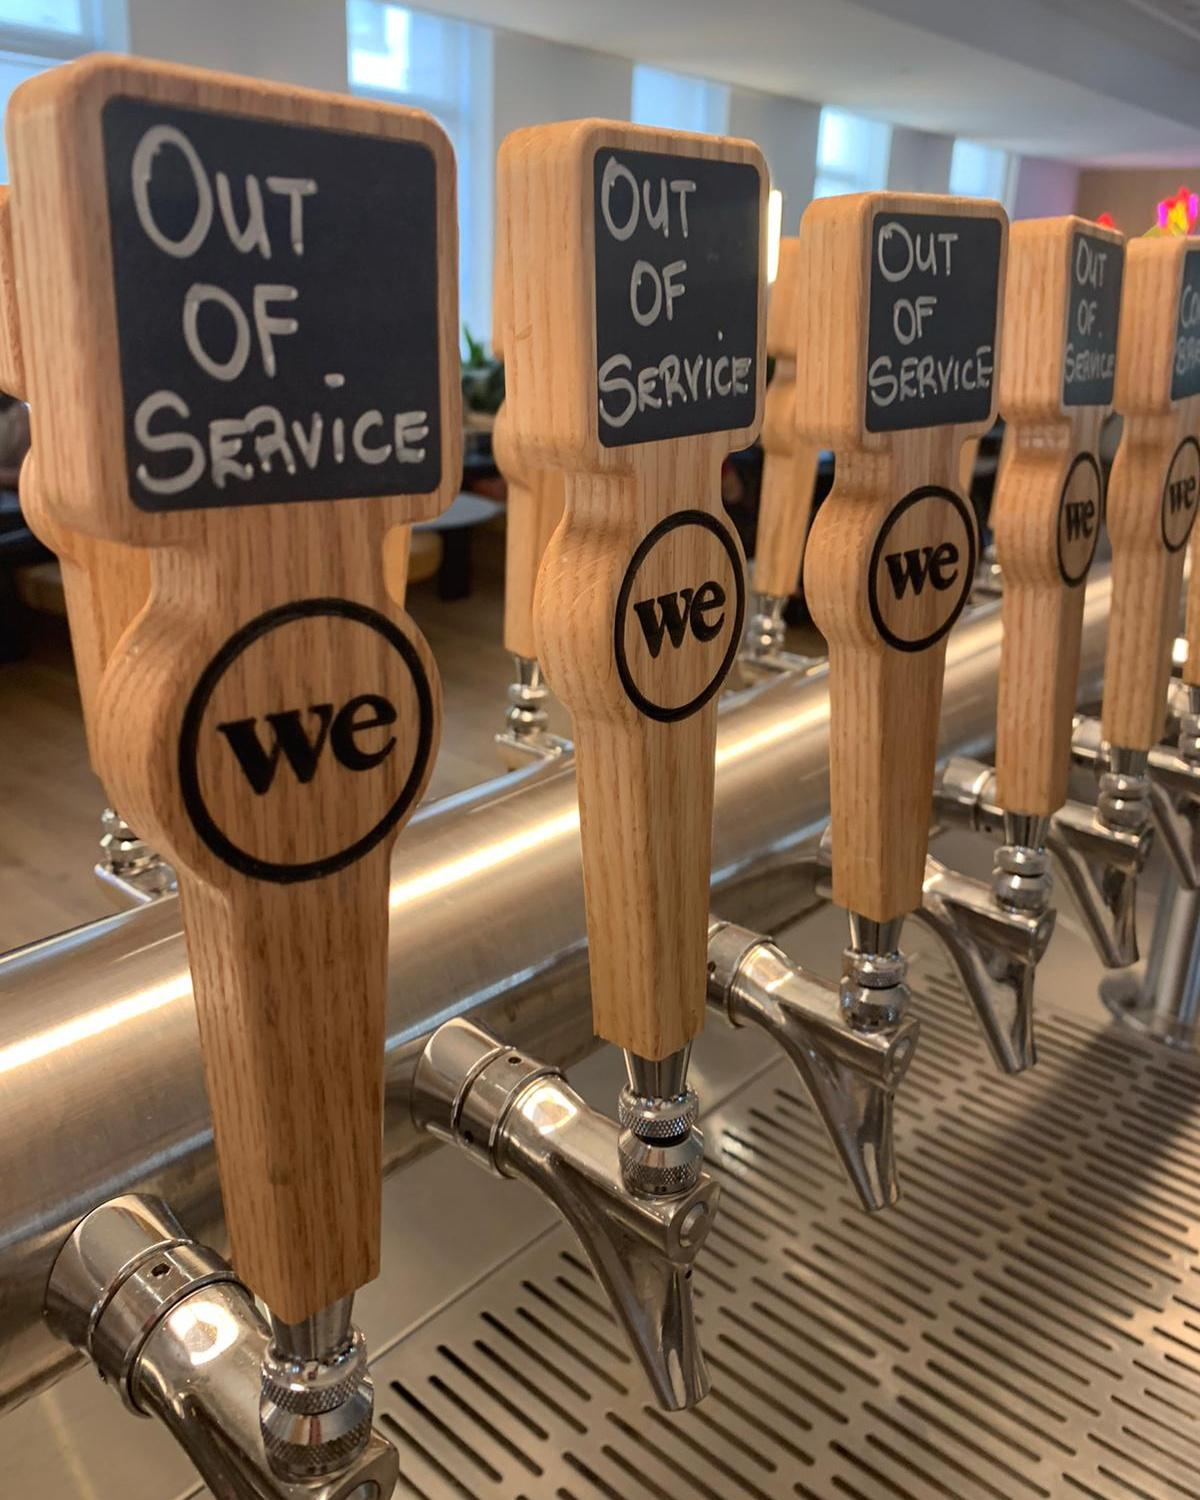 'We were sold off': WeWork's support staff face uncertain future as company collapses